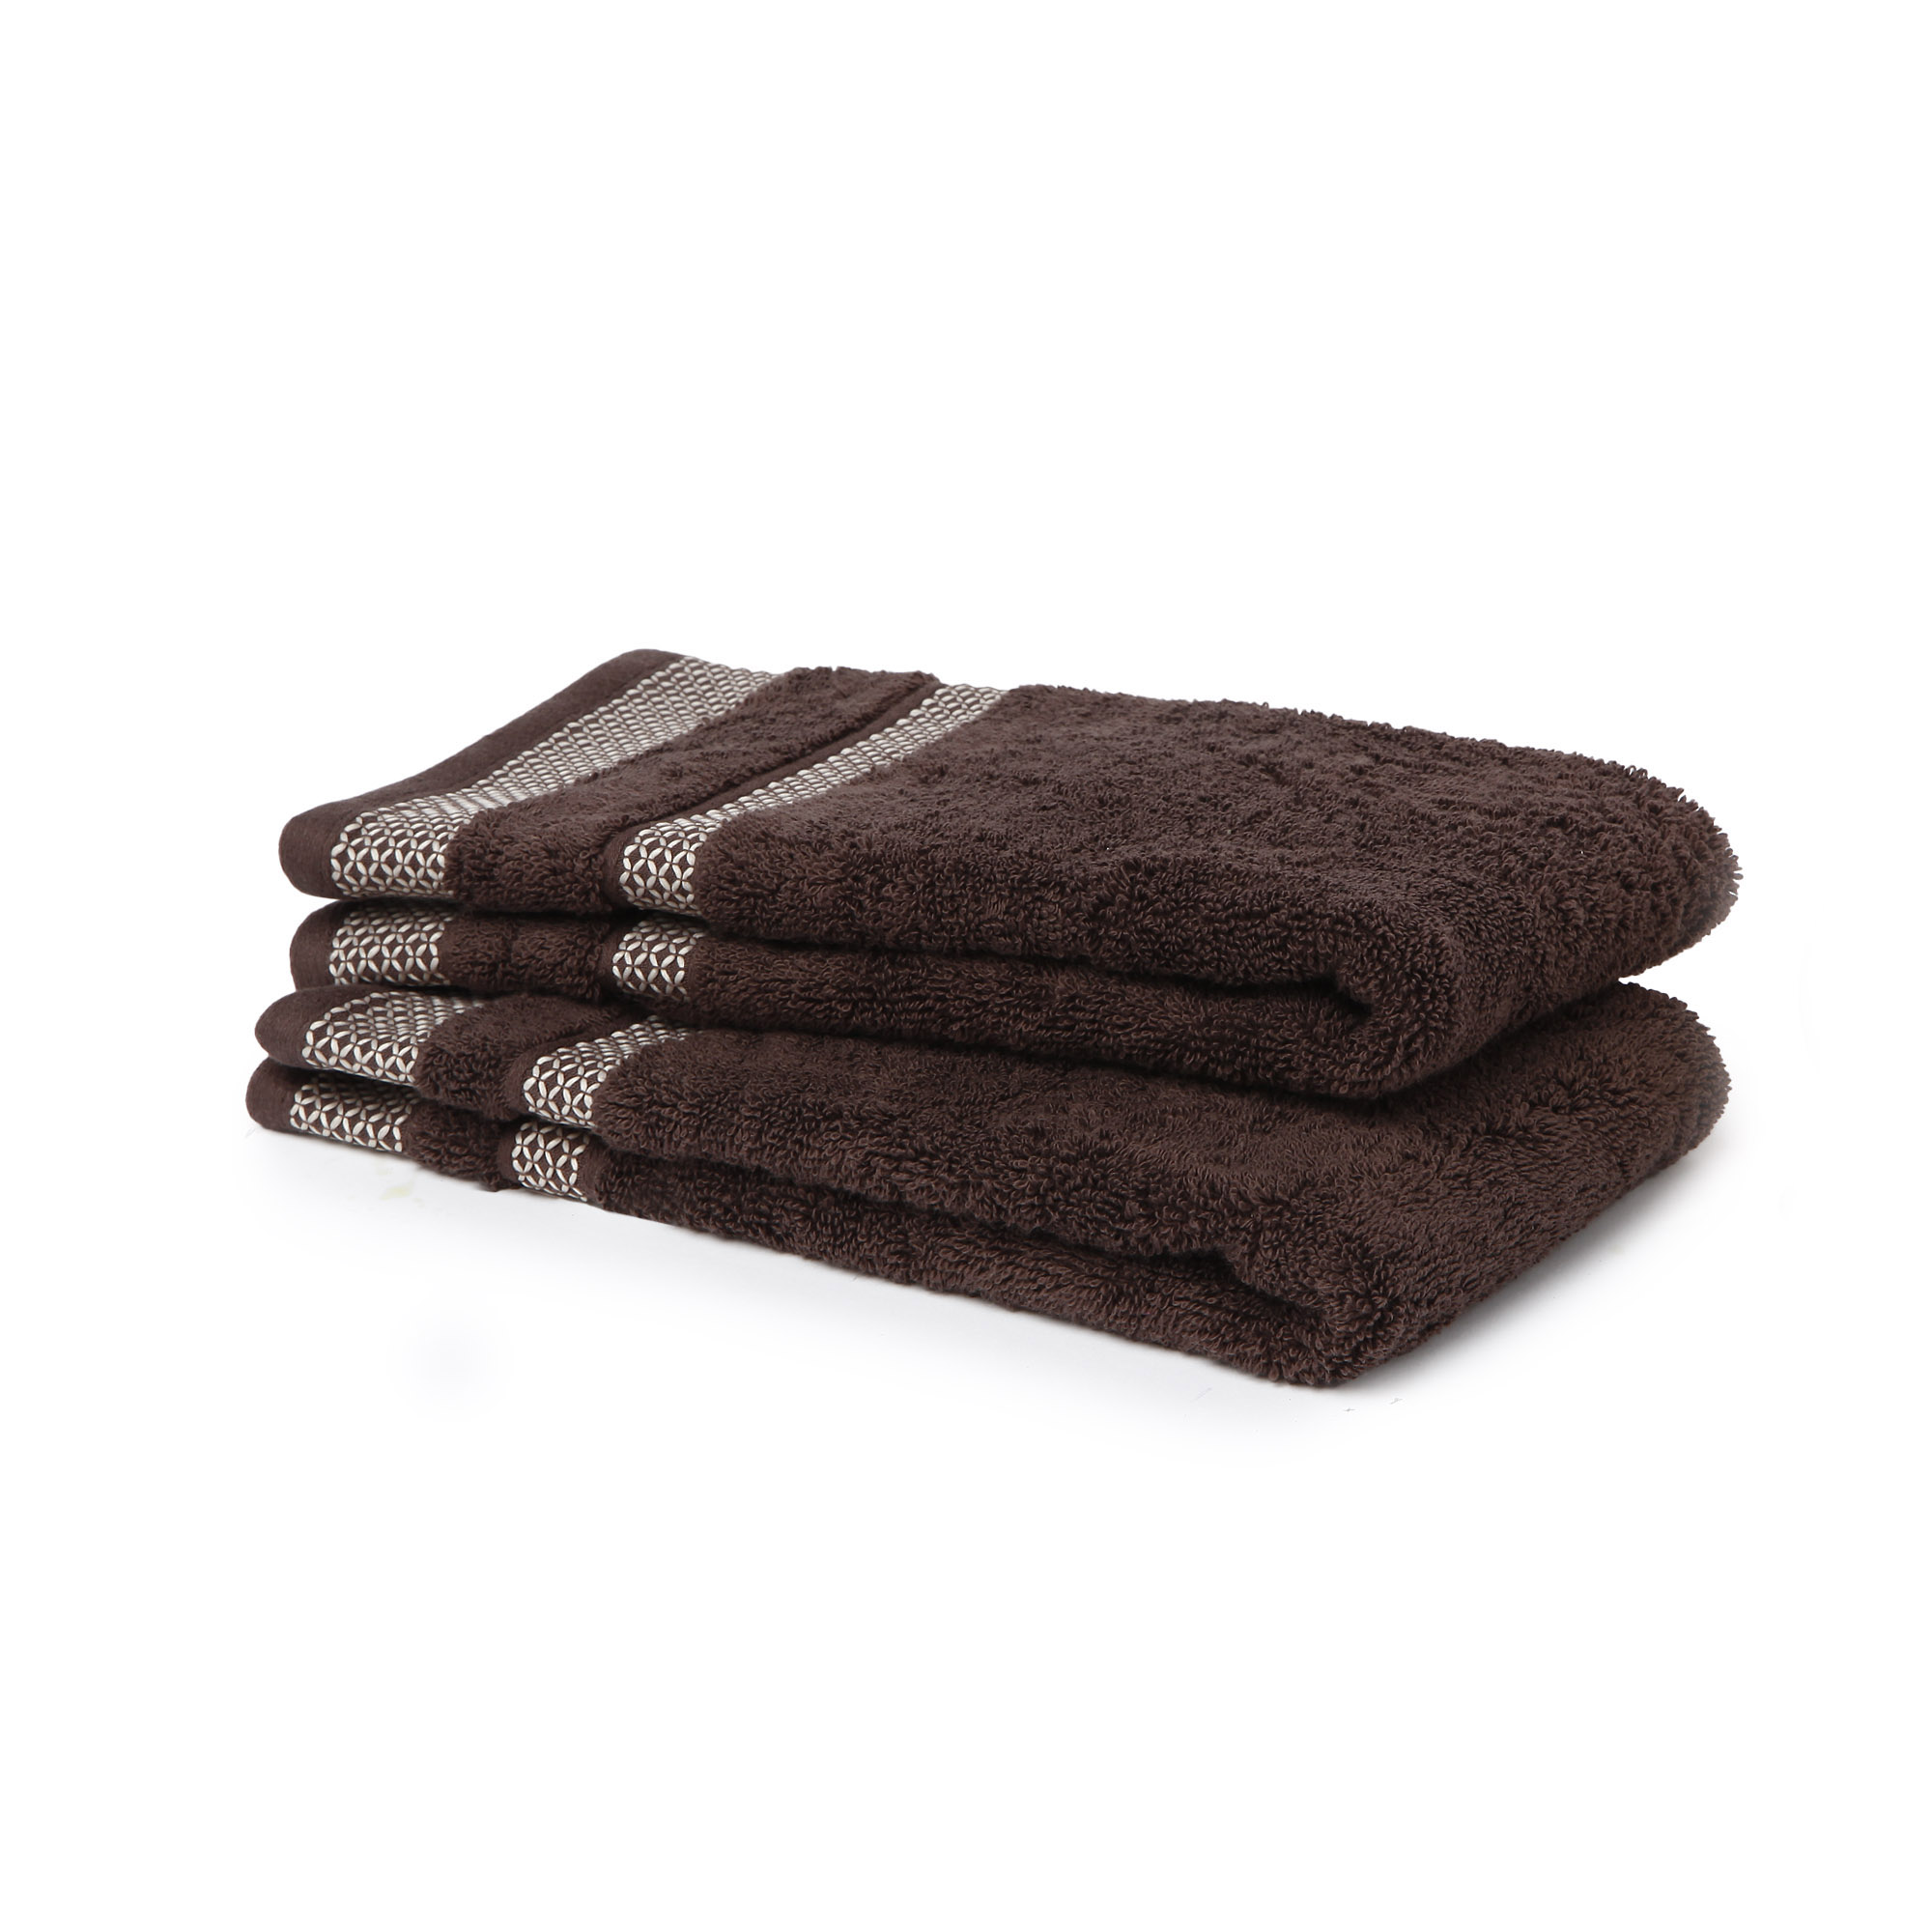 Spaces Bohochic Cotton King Bed Sheets in Chocolate Colour by Spaces